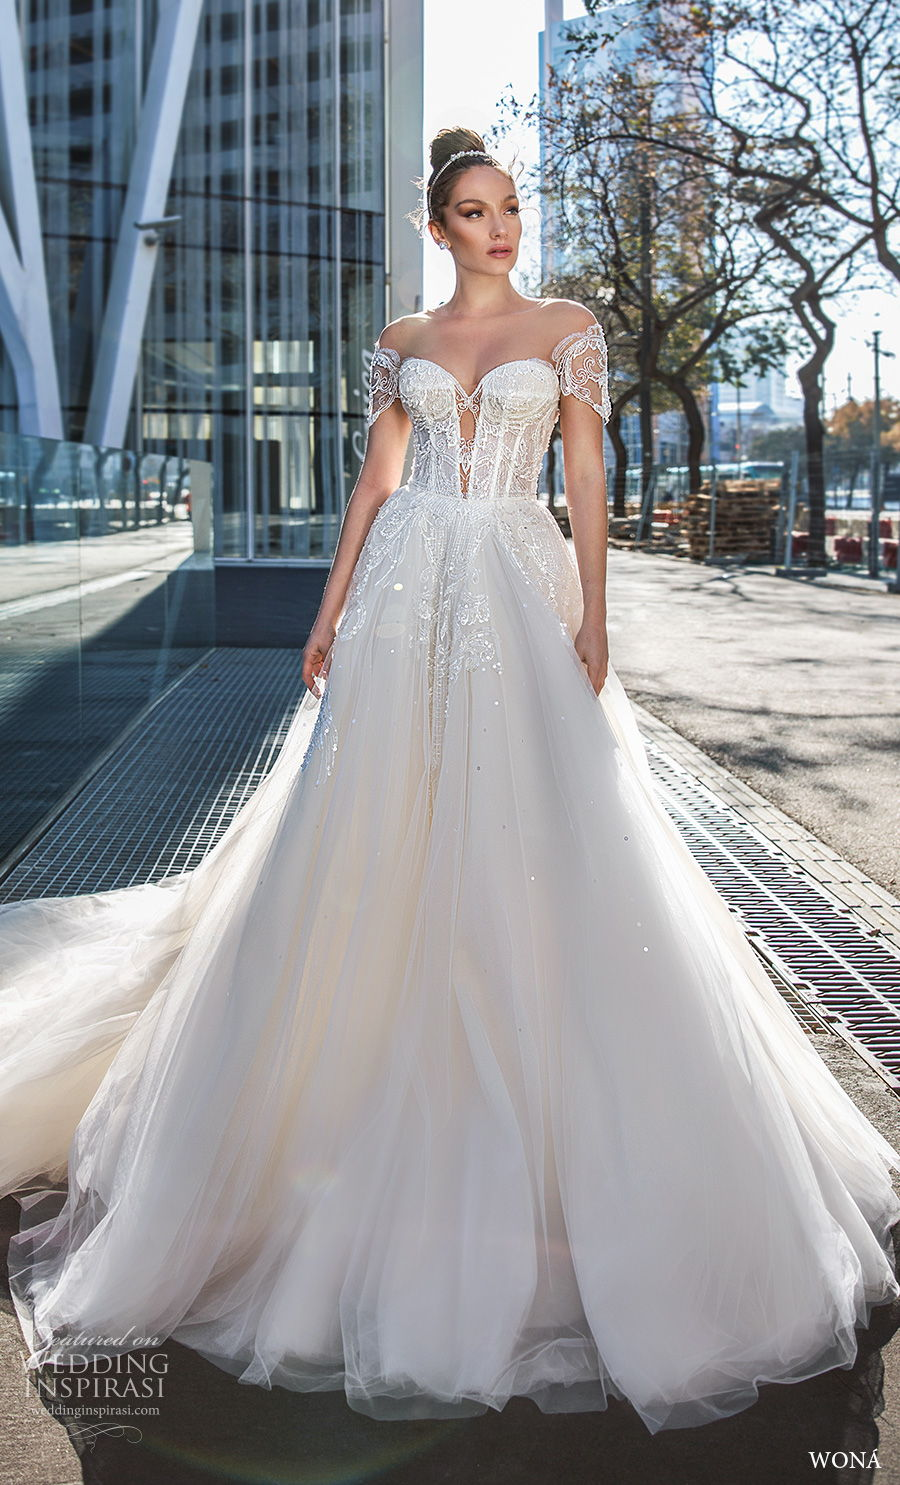 wona 2020 diva bridal off the shoulder short sleeves sweetheart neckline heavily embellished bodice glamorous a  line wedding dress mid back chapel train (19) mv